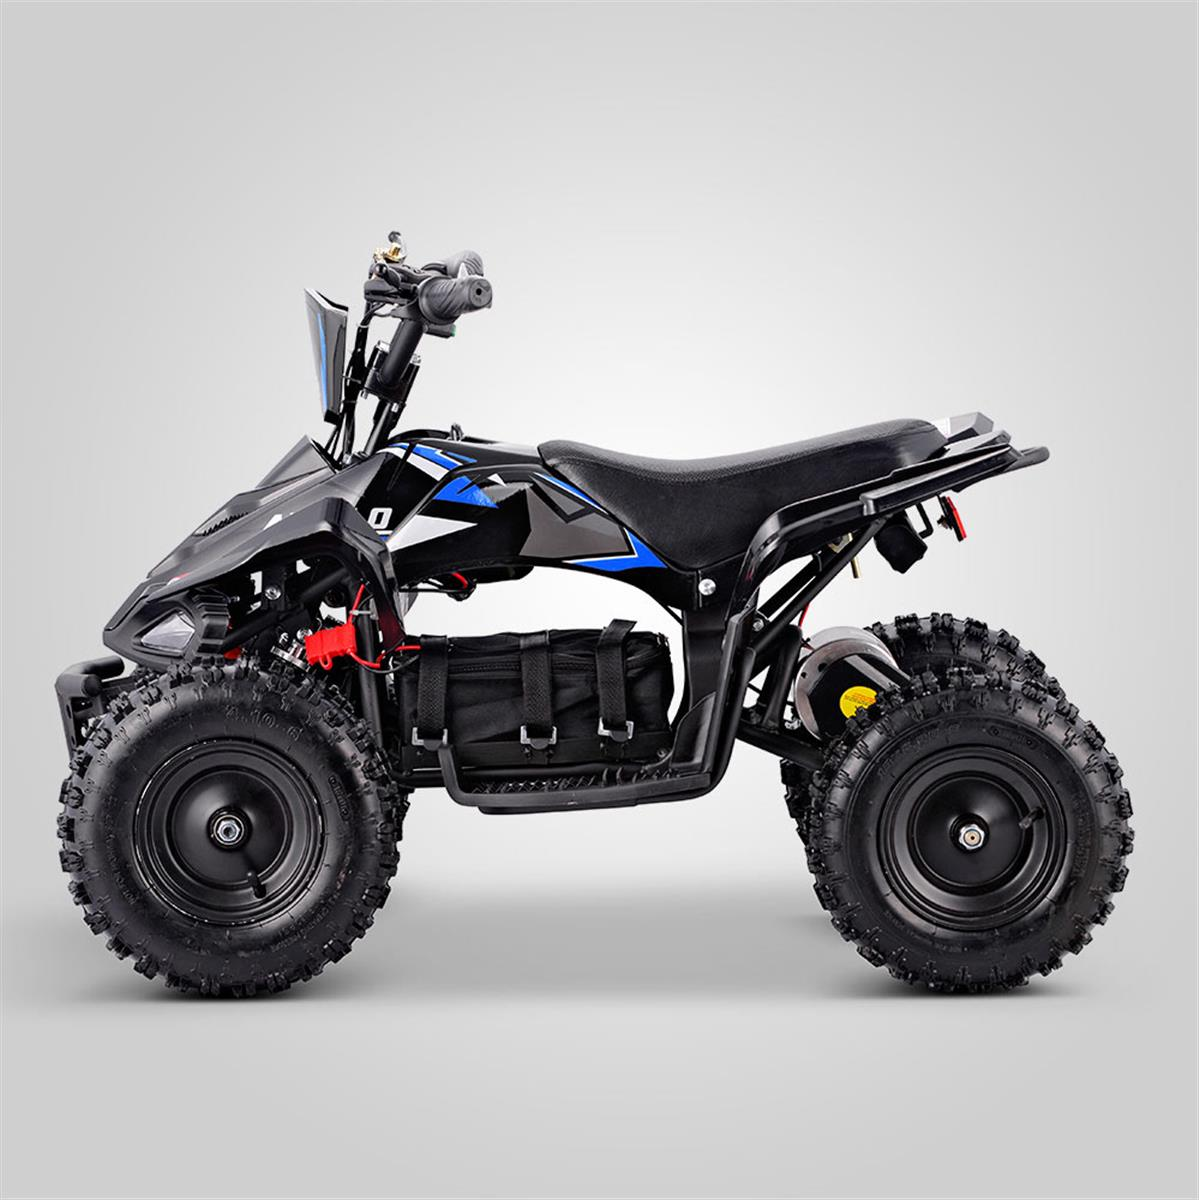 quad bleu enfant electrique 1000w fox smallmx dirt bike pit bike quads minimoto. Black Bedroom Furniture Sets. Home Design Ideas